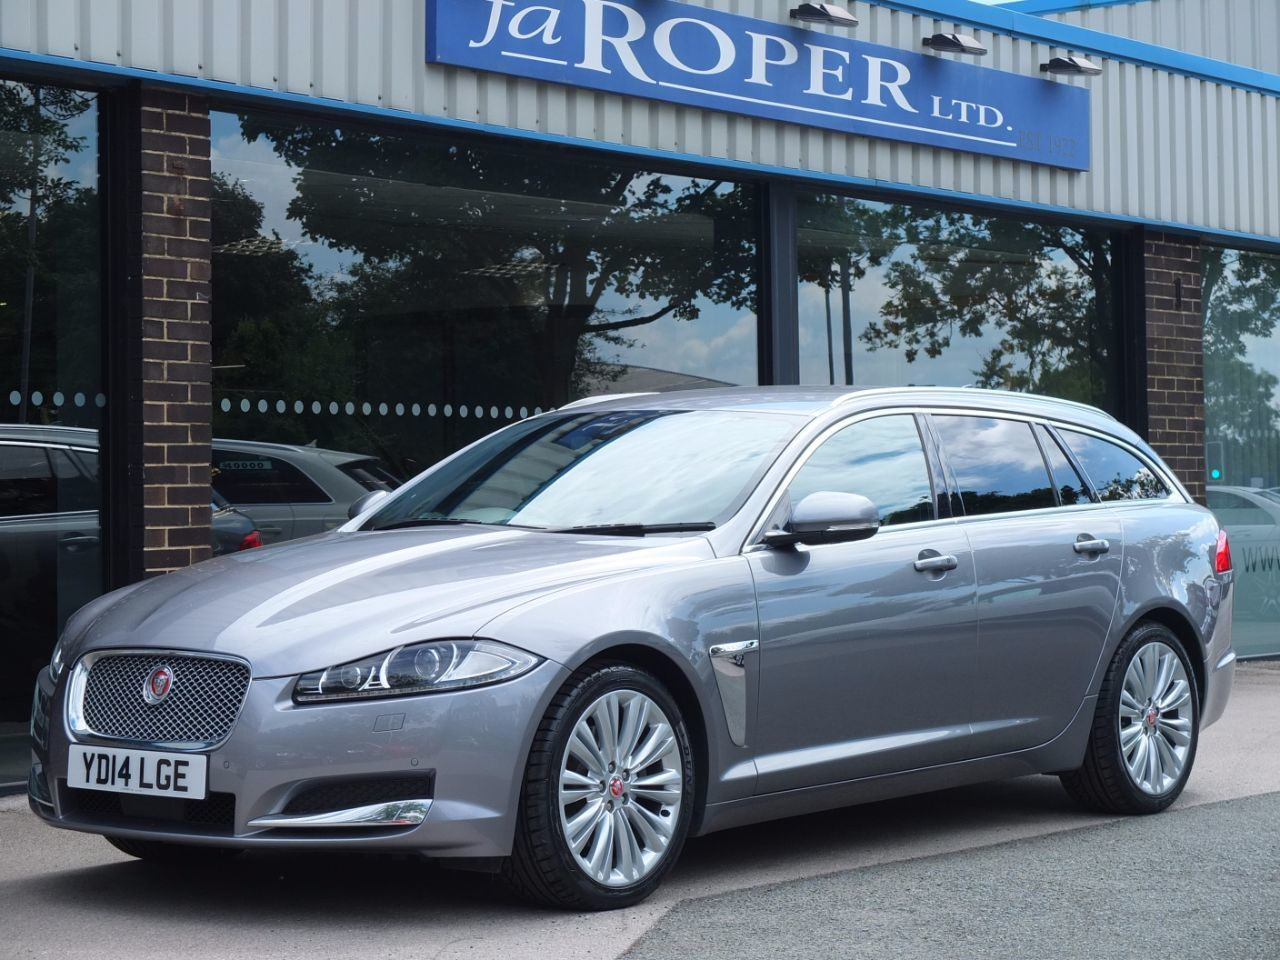 Jaguar XF 2.2d [200ps] Portfolio Sportbrake Auto Estate Diesel Luna Grey Metallic